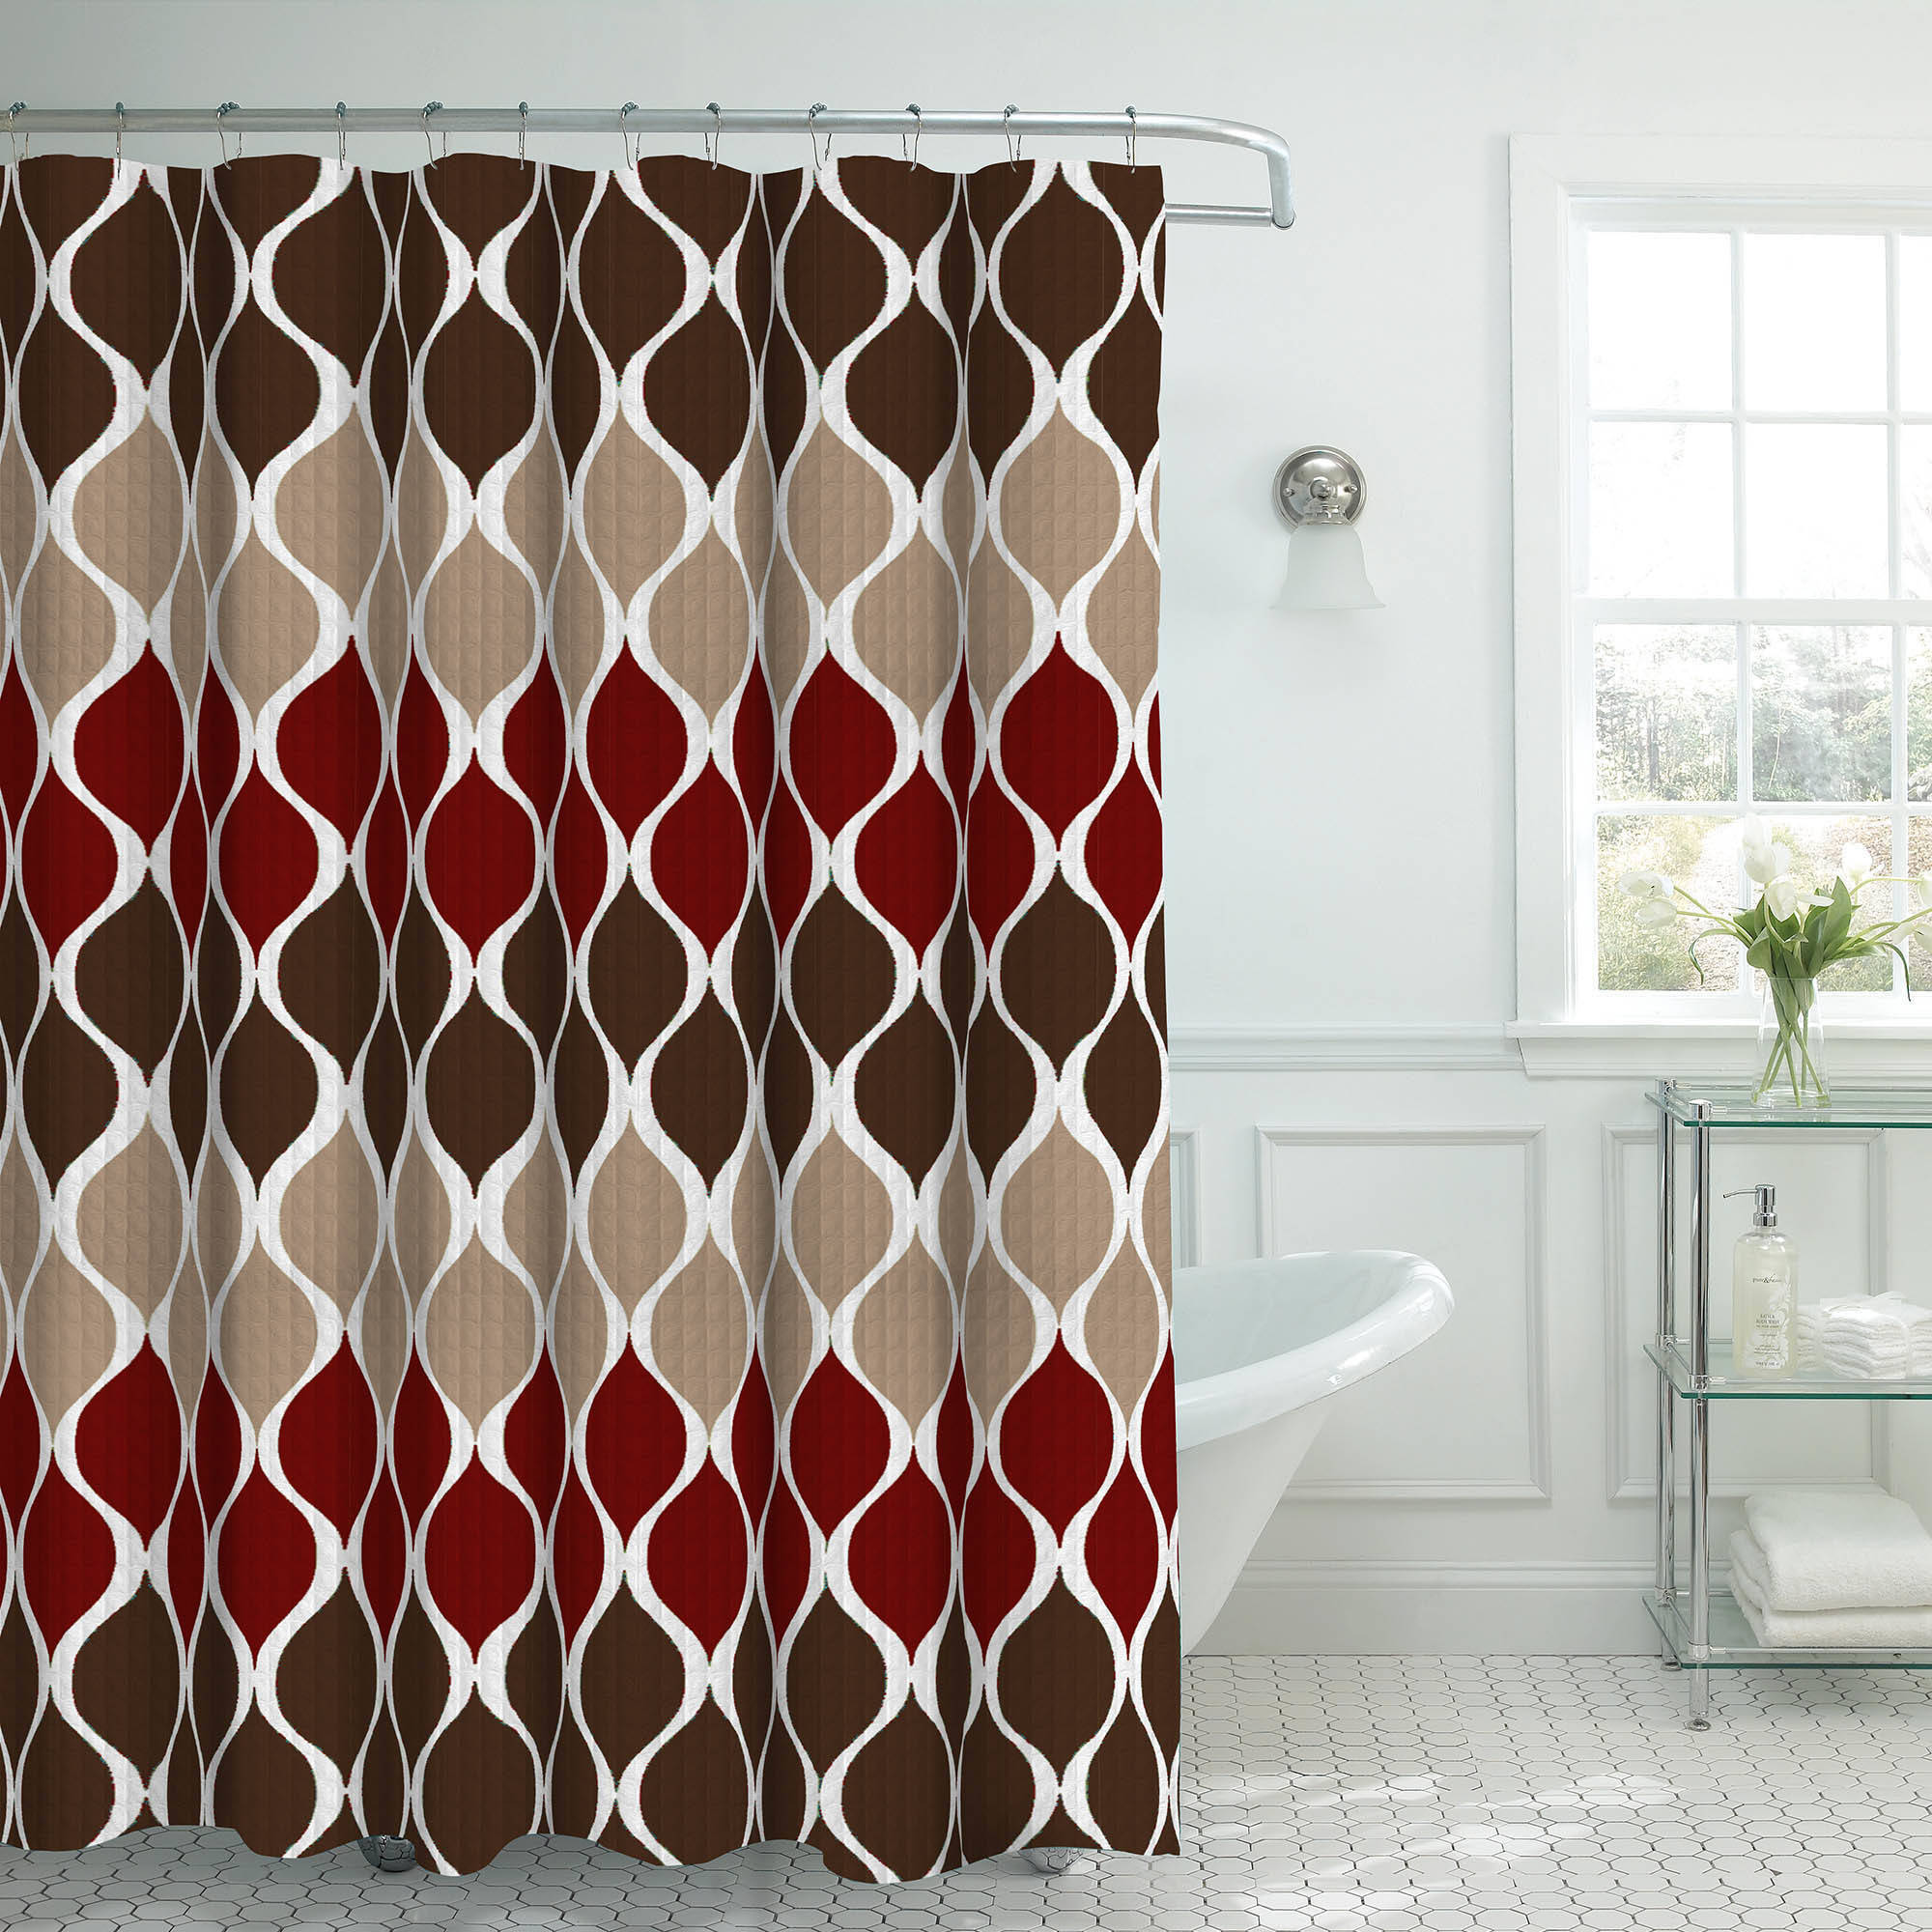 Bounce Comfort Oxford Weave Textured 13-Piece Shower Curtain Set with Metal Roller Hooks,... by YMF Carpets, Inc.